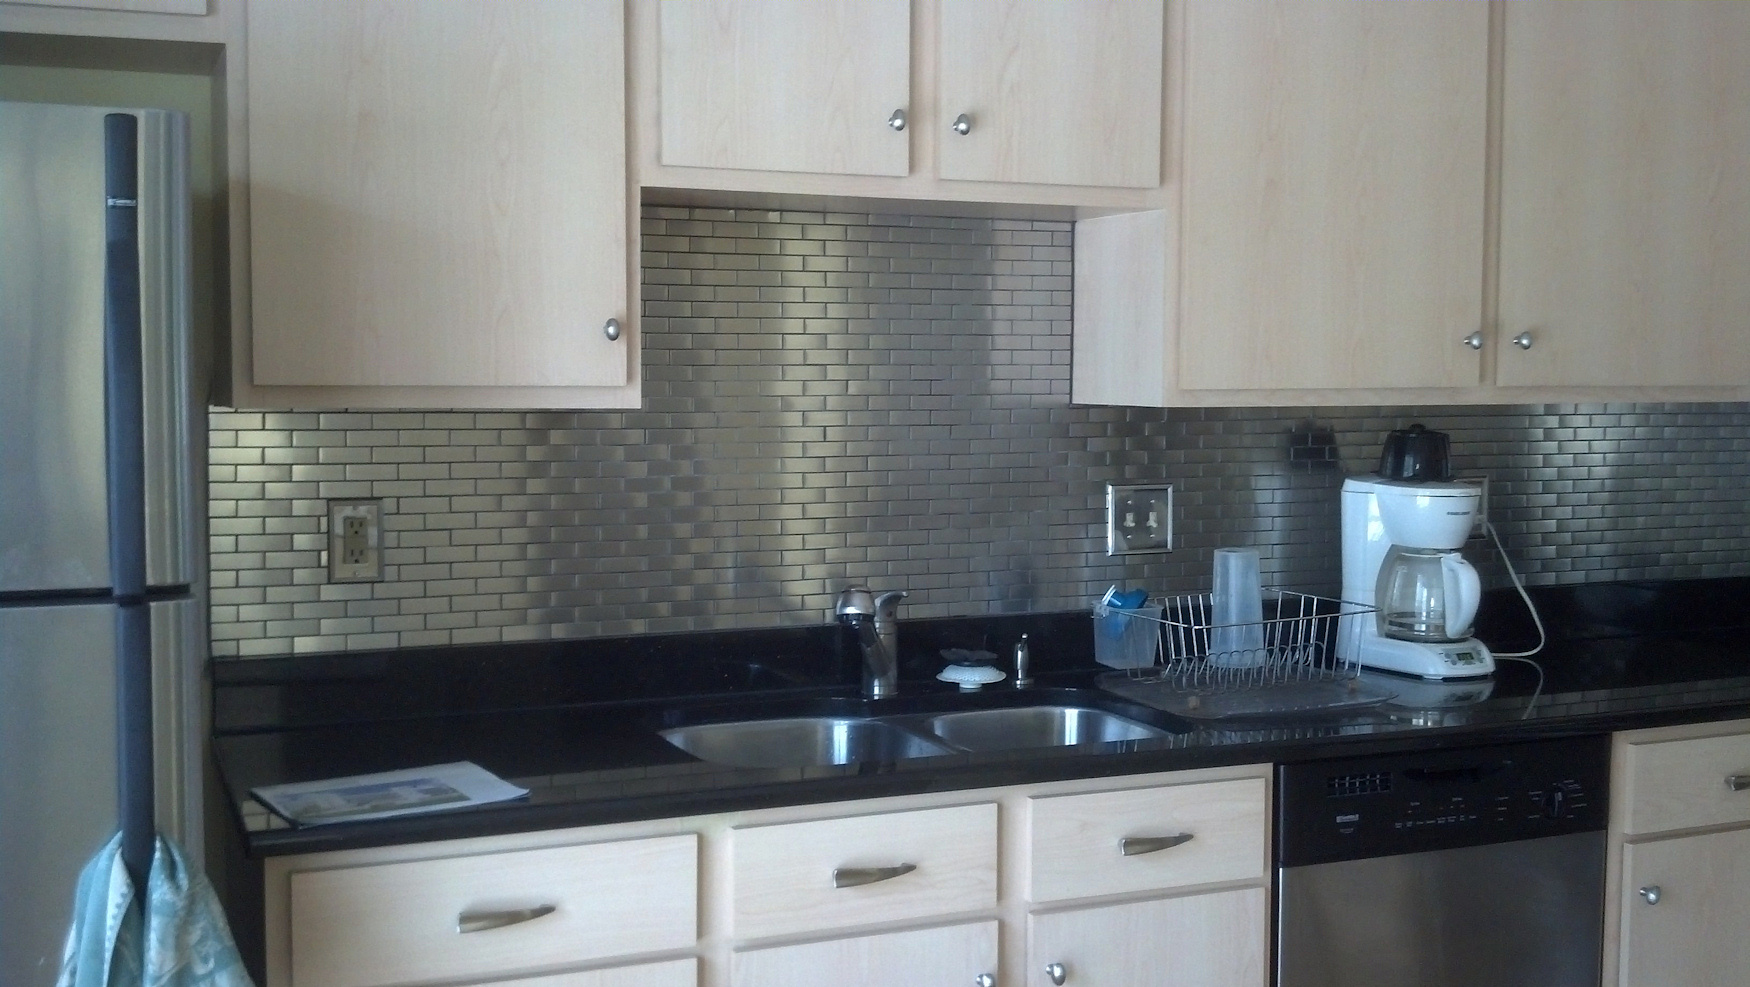 5 DIY Stainless Steel Kitchen Makeovers On The Cheap